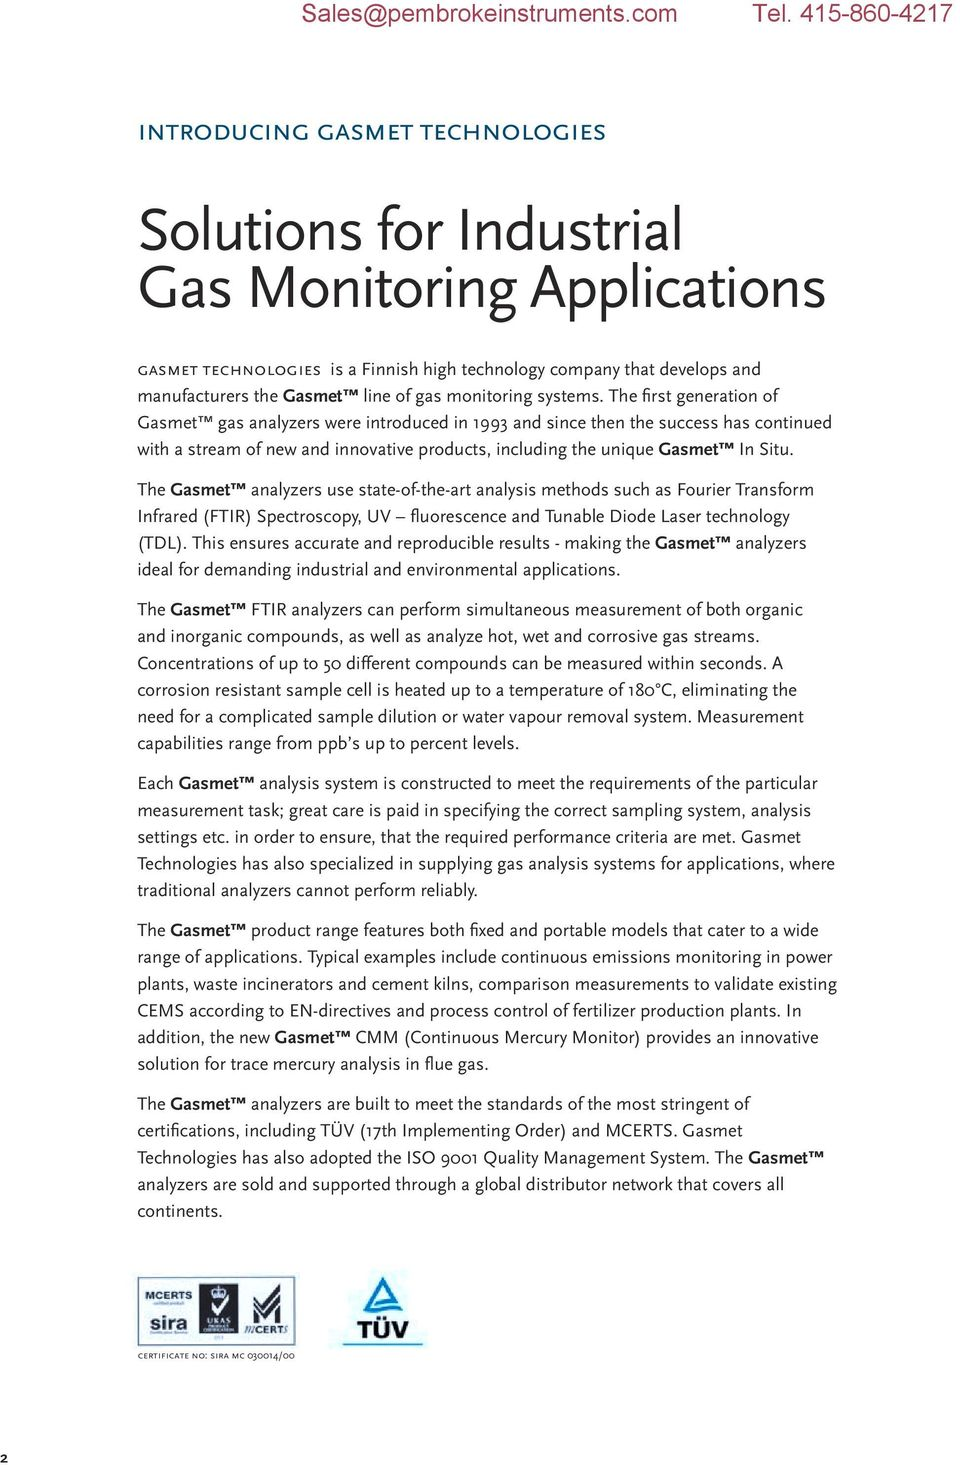 The fi rst generation of Gasmet gas analyzers were introduced in 1993 and since then the success has continued with a stream of new and innovative products, including the unique Gasmet In Situ.